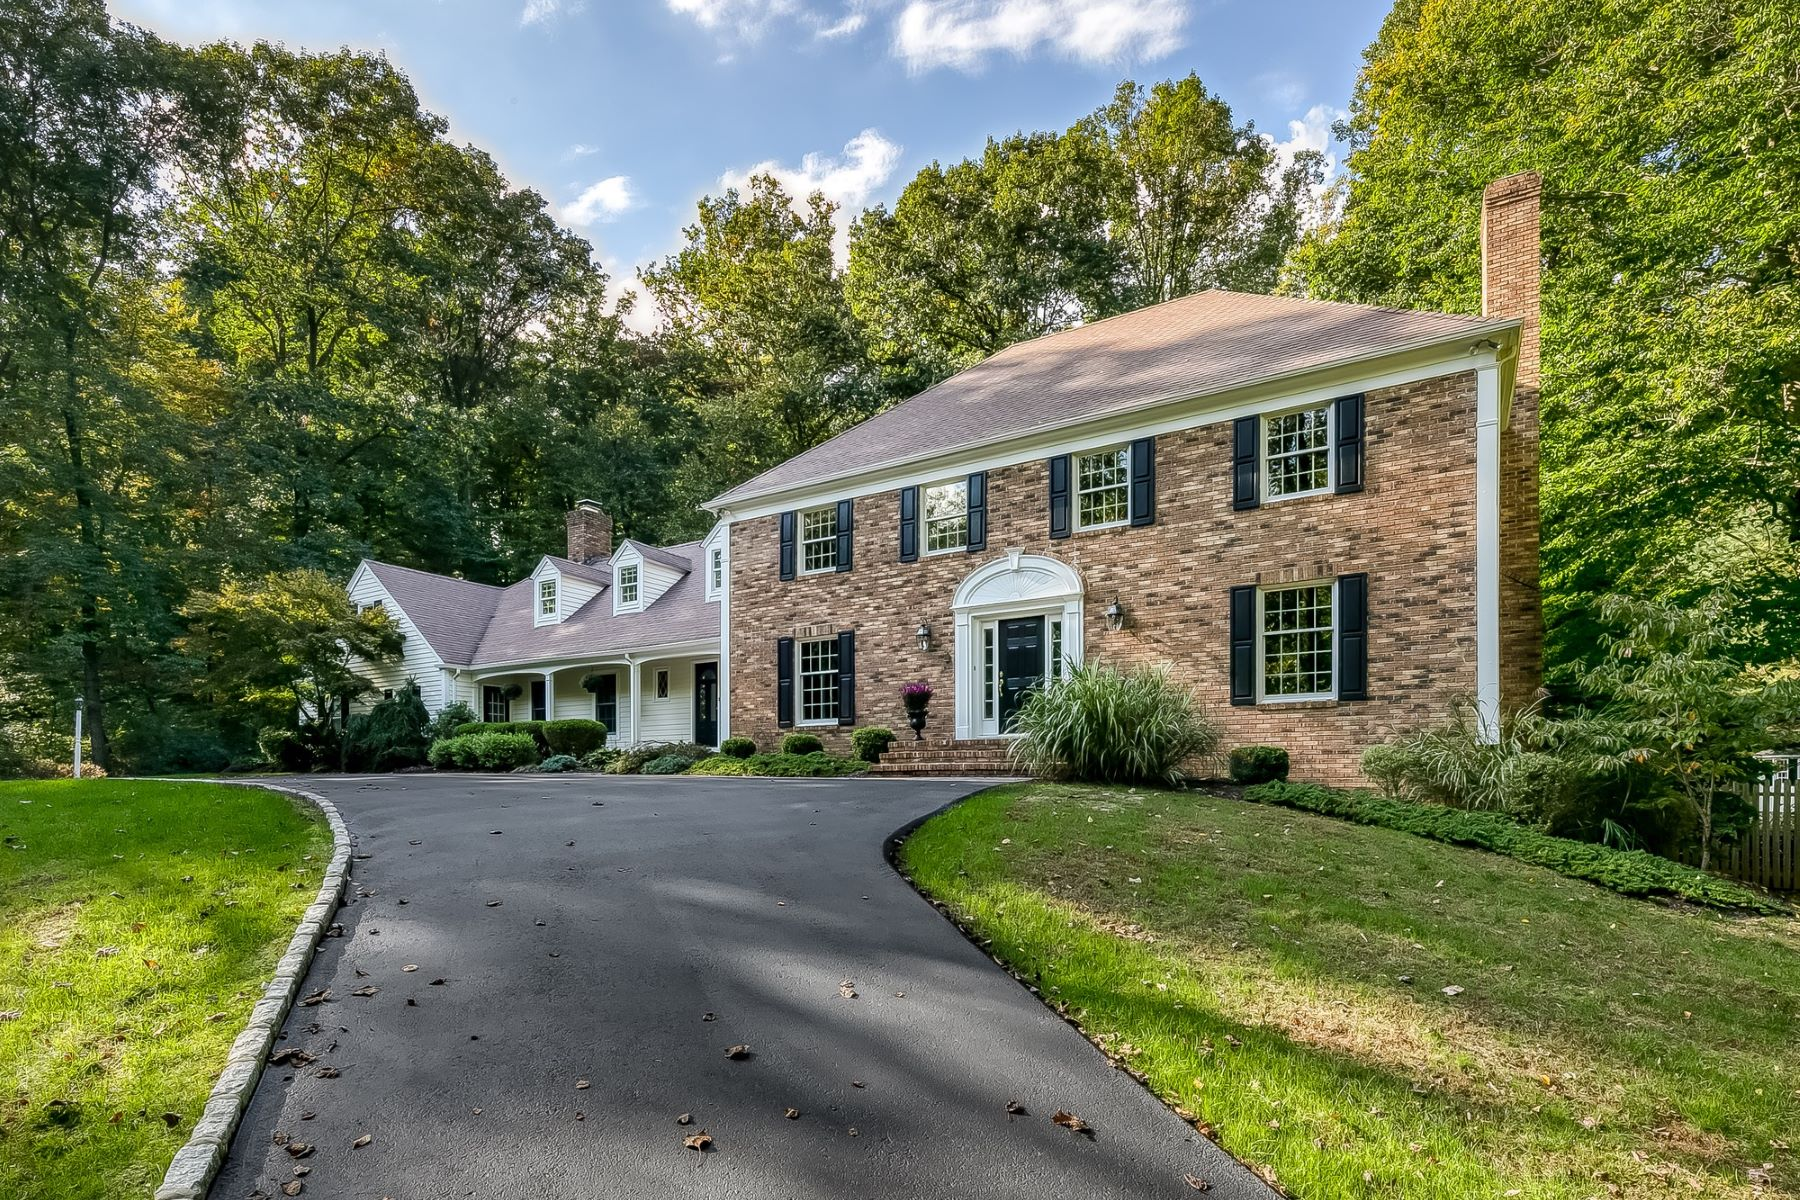 Single Family Homes for Sale at Stunning Center Hall Colonial 6 Indian Hollow Road Mendham, New Jersey 07945 United States